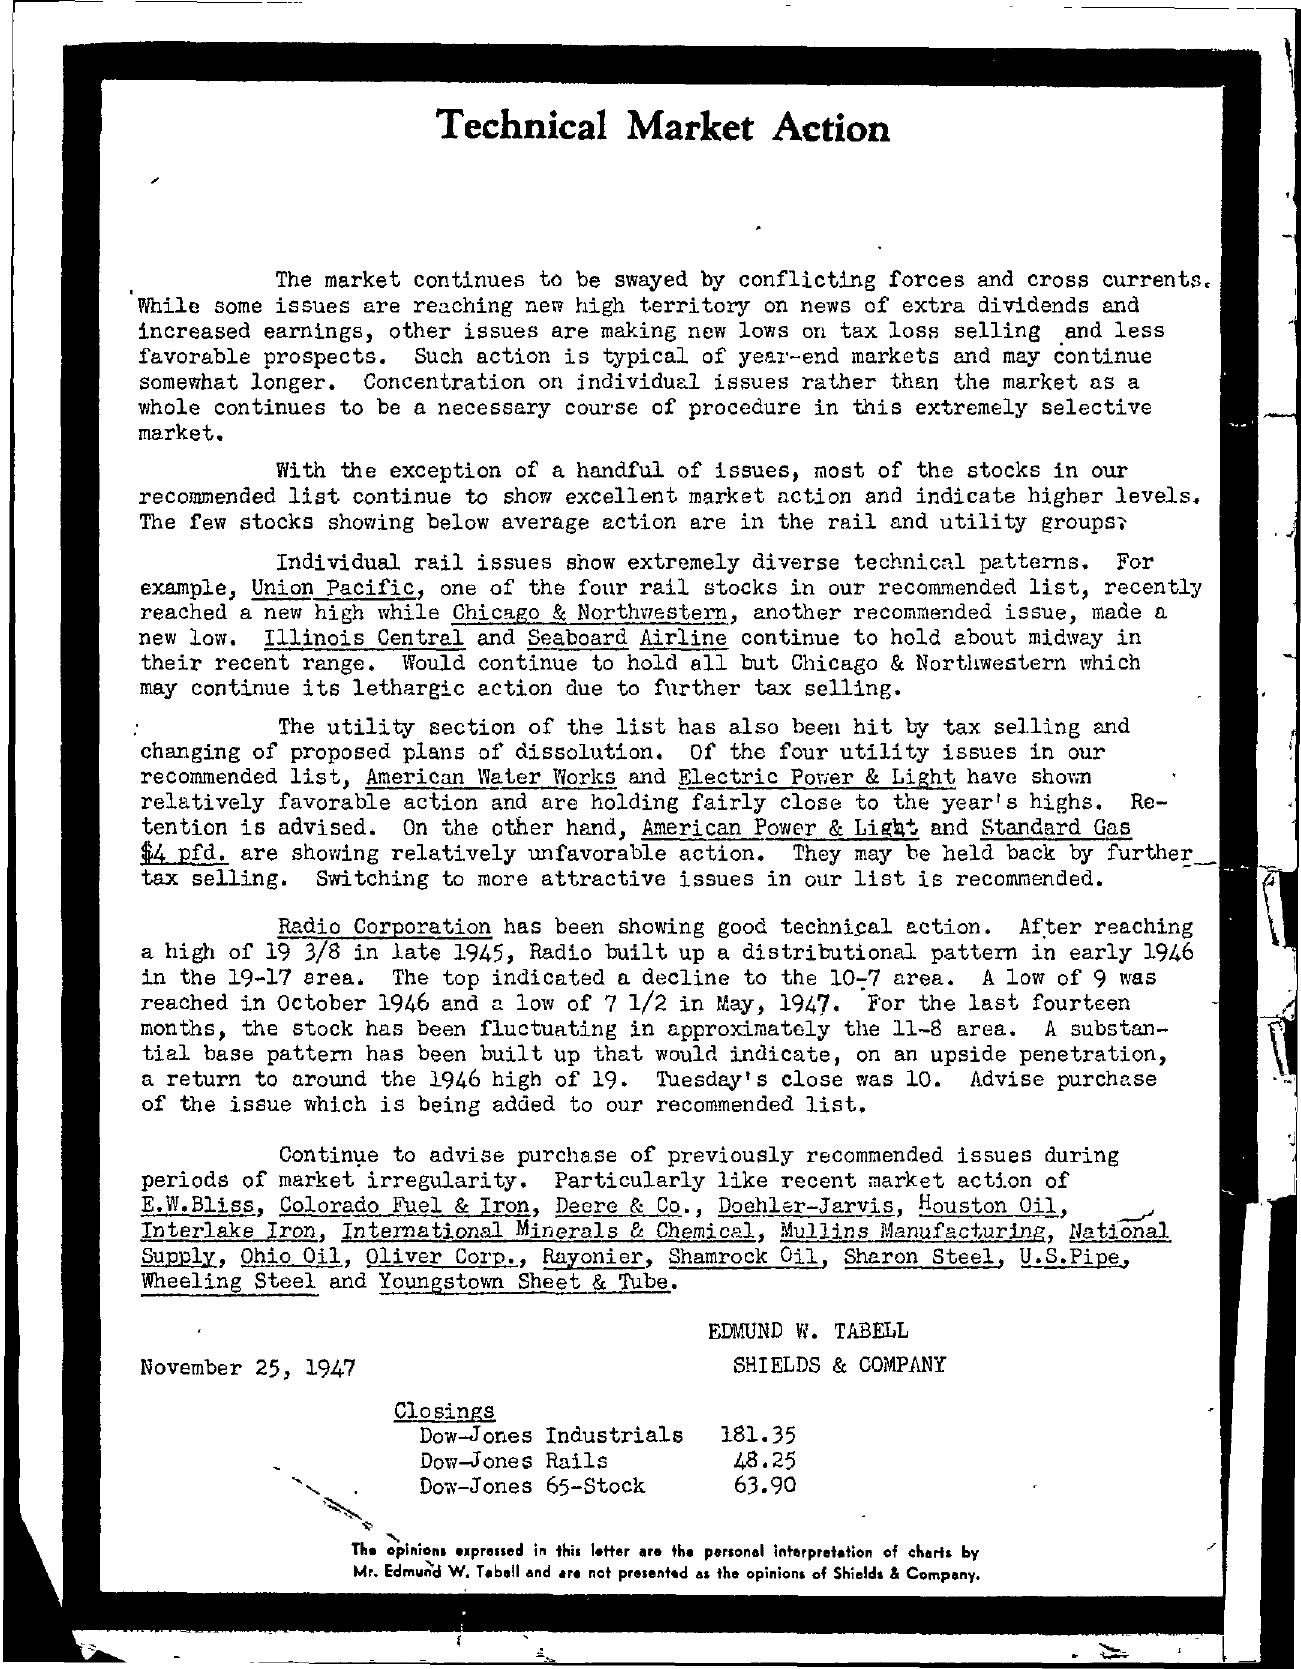 Tabell's Market Letter - November 25, 1947 page 1